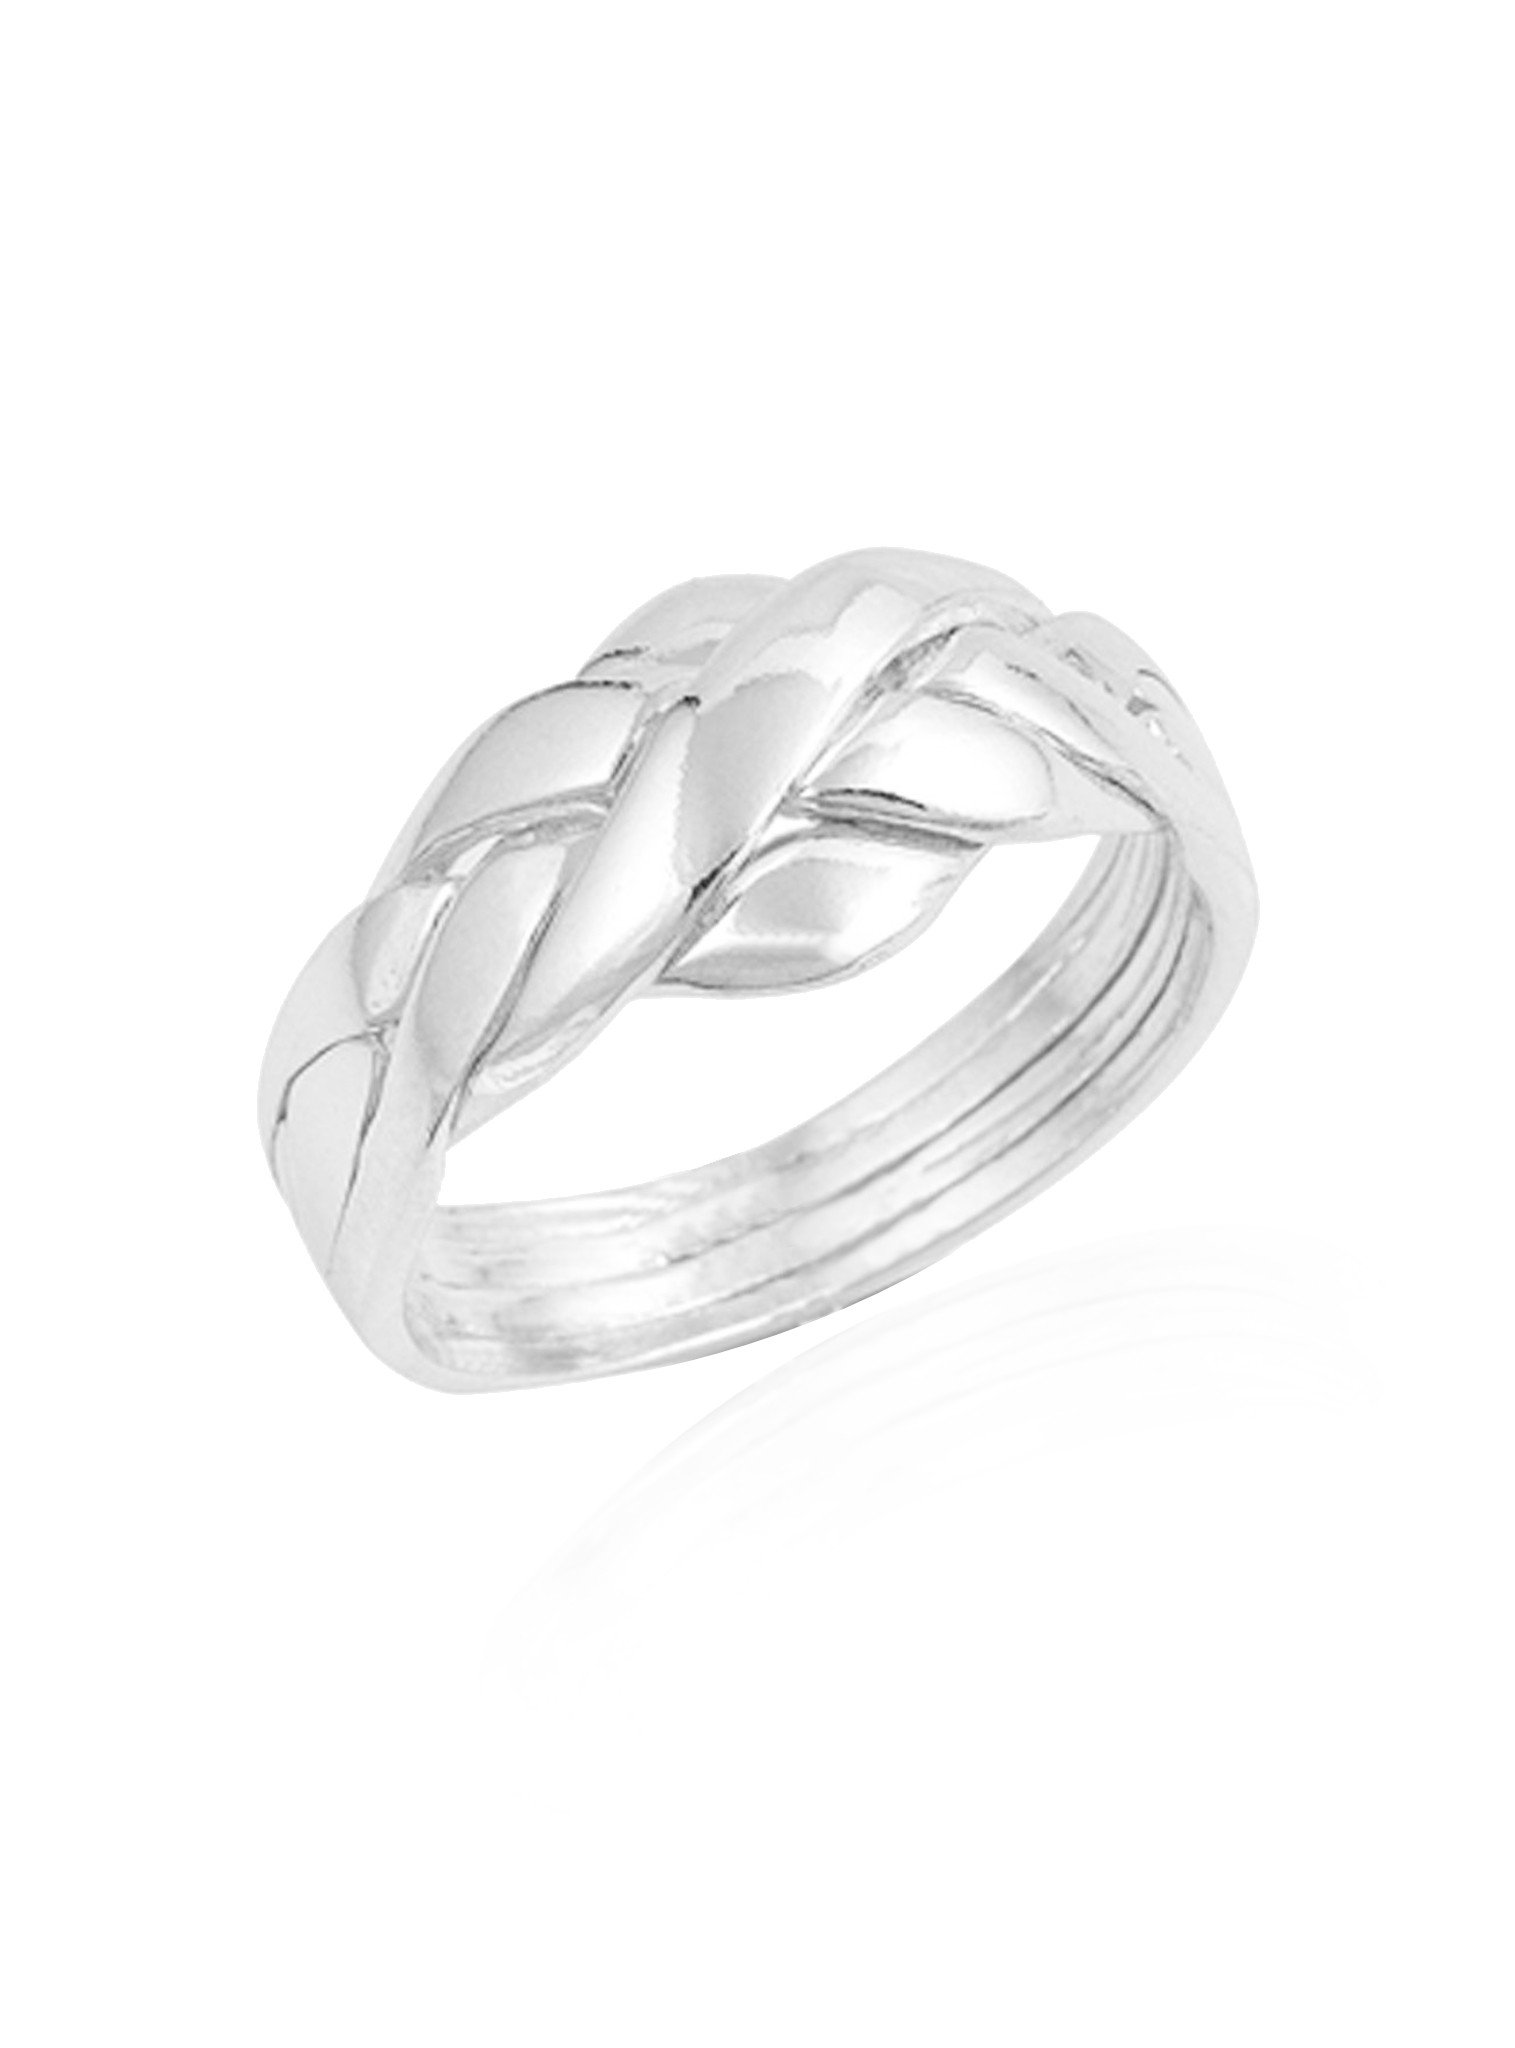 Reagan Puzzle Ring in Sterling Silver